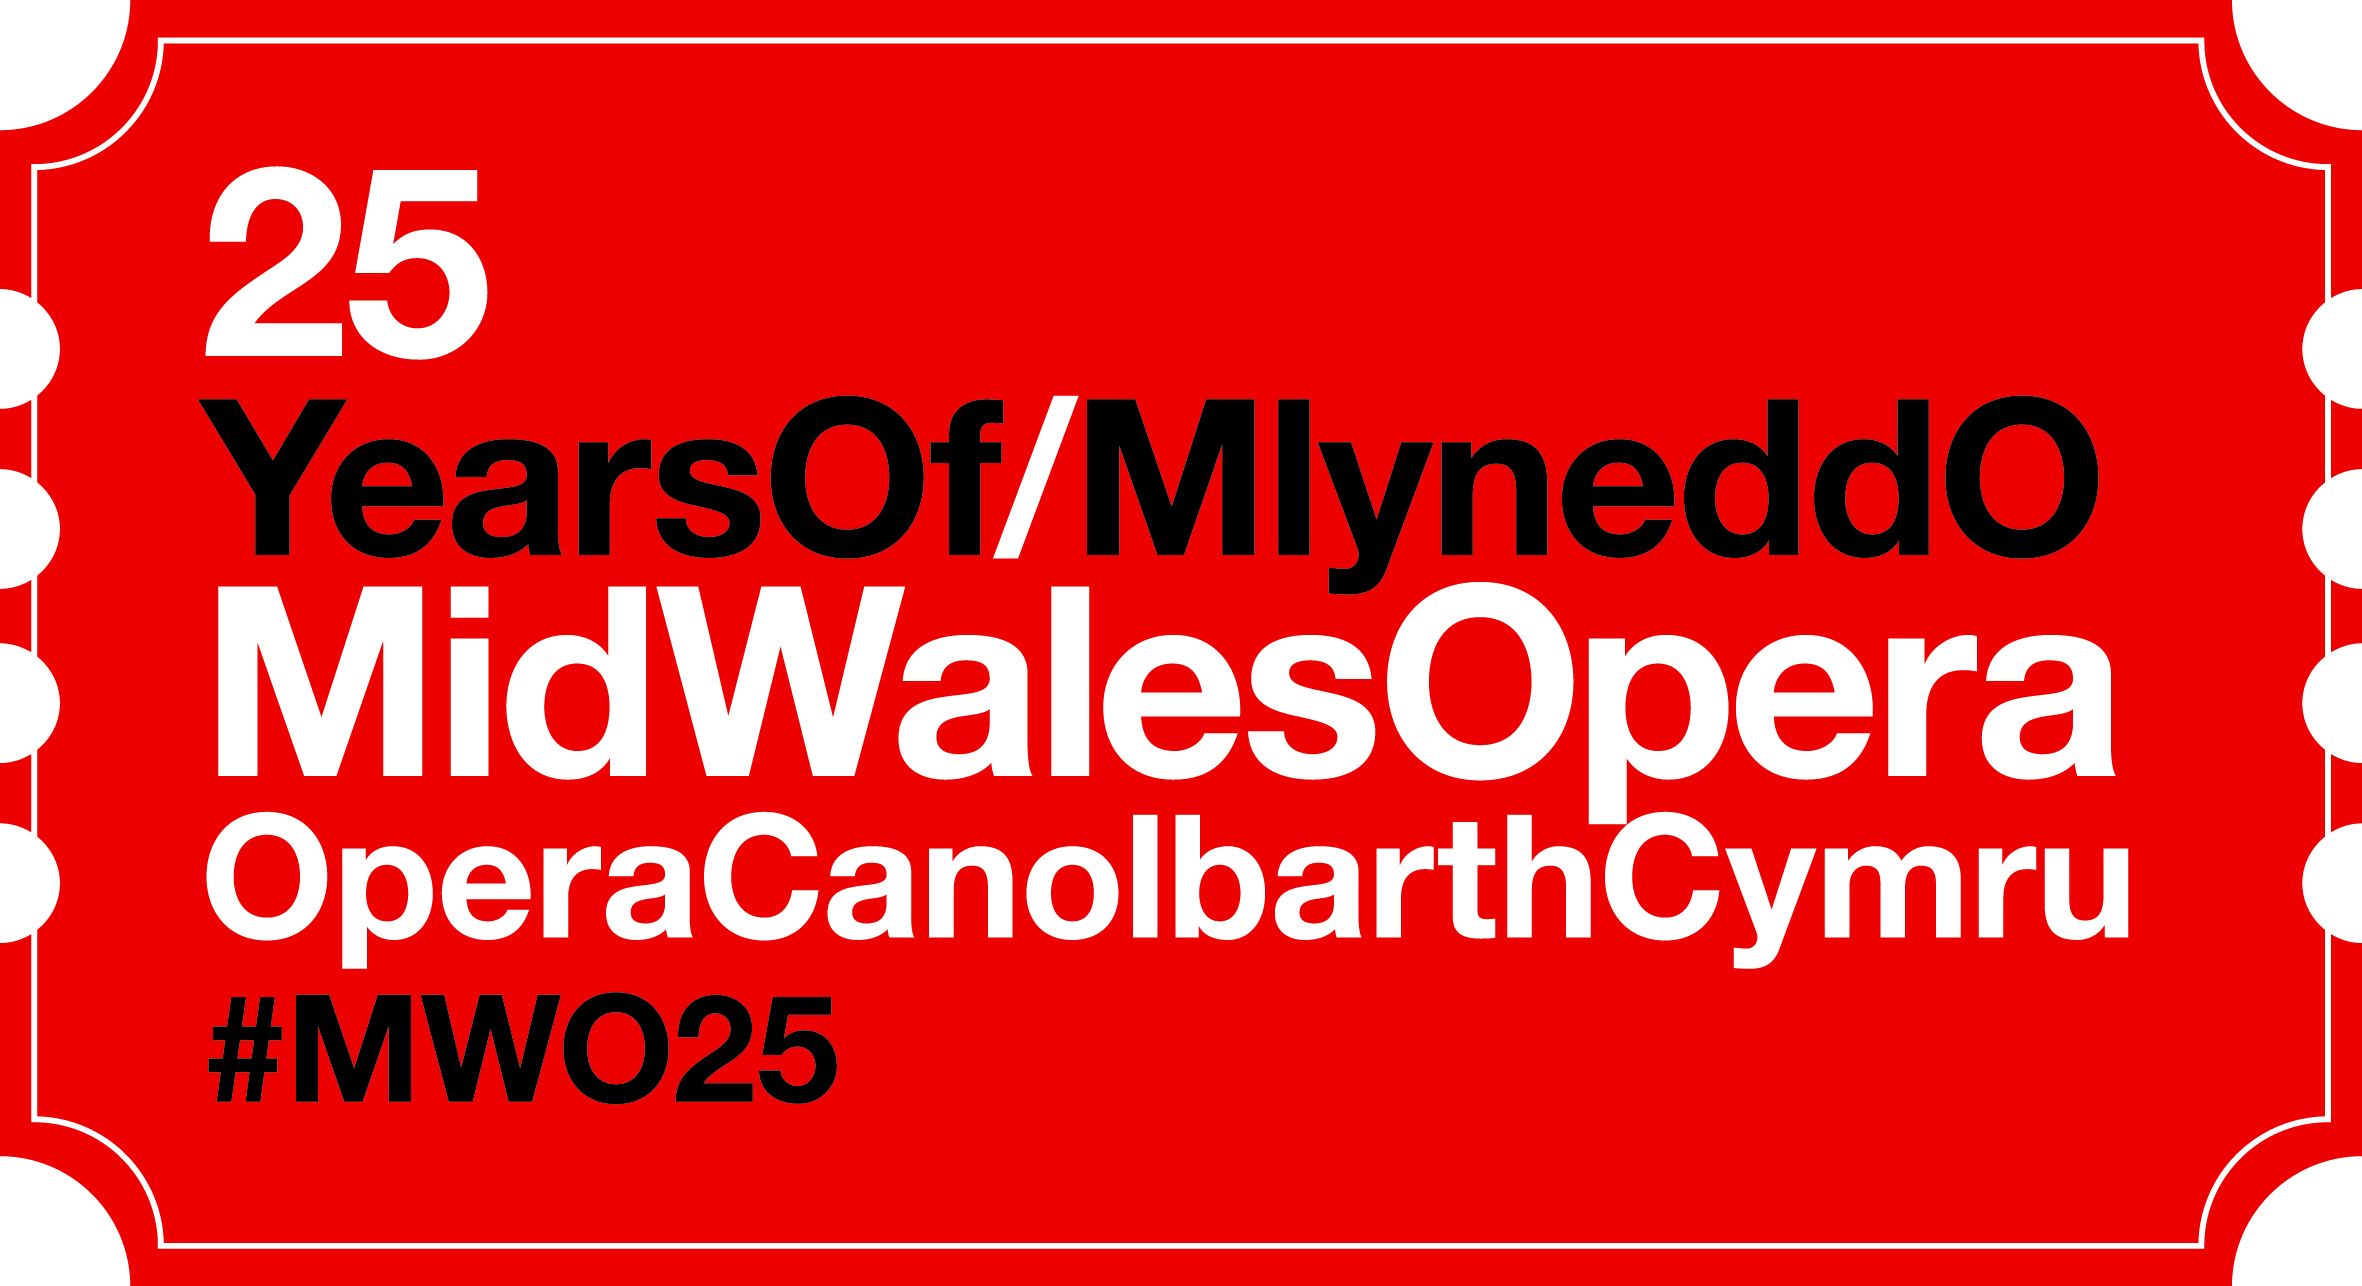 I am delighted to have taken on  Mid Wales Opera  for its 25th Anniversary Year. The company will be staging two major productions in 2014 - Handel's Acis & Galatea with Rachel Podger and Brecon Baroque and Carmen, directed by Dr Jonathan Miller.